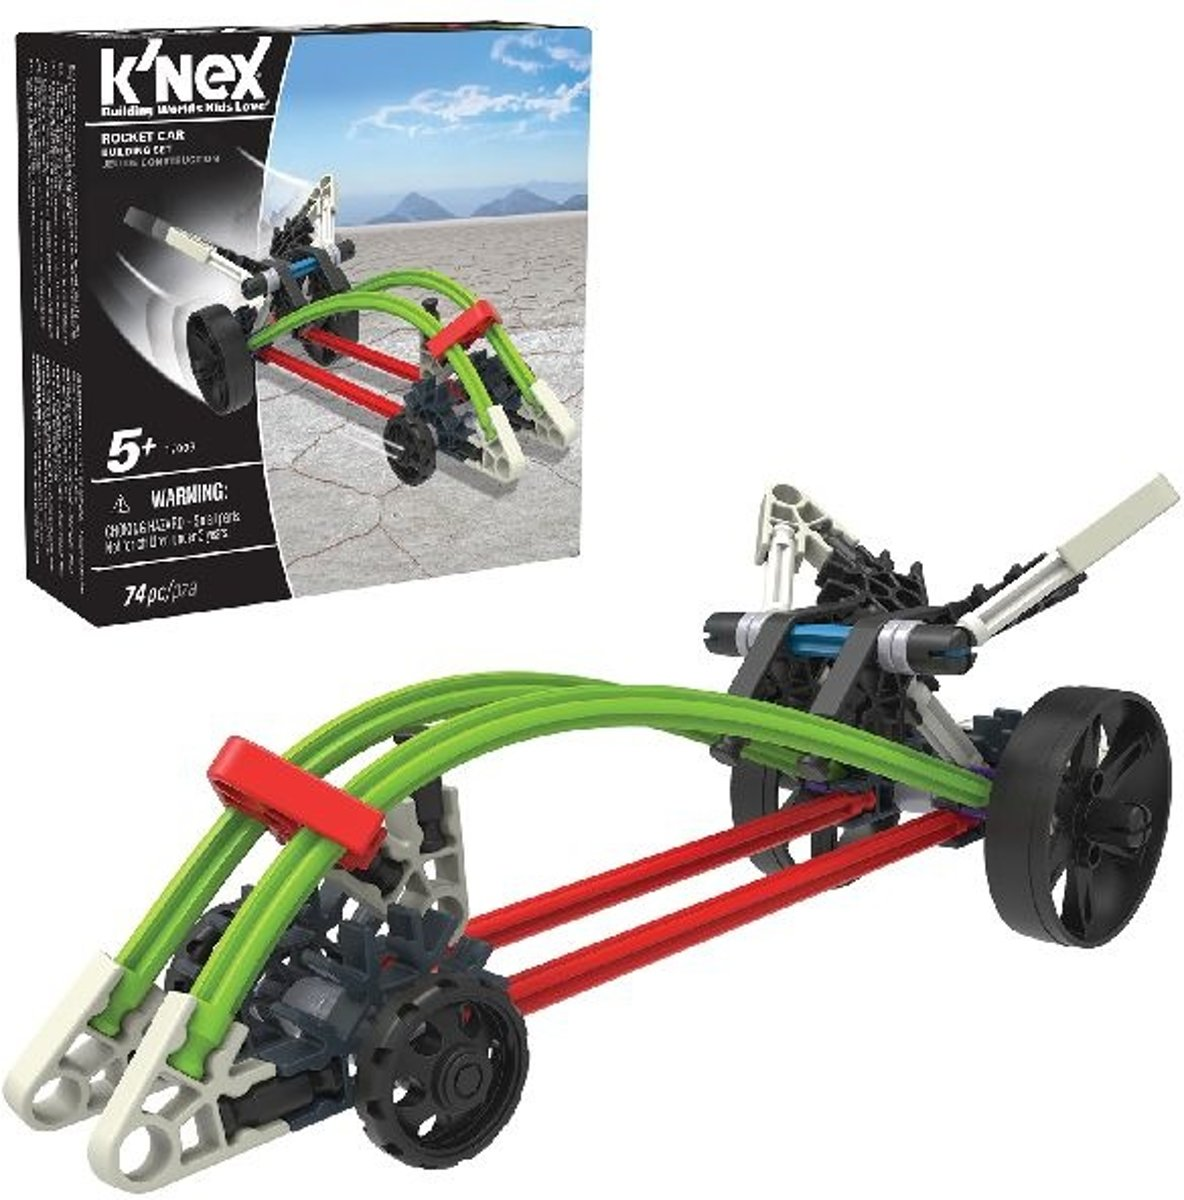 Knex Rocket Car Building Set